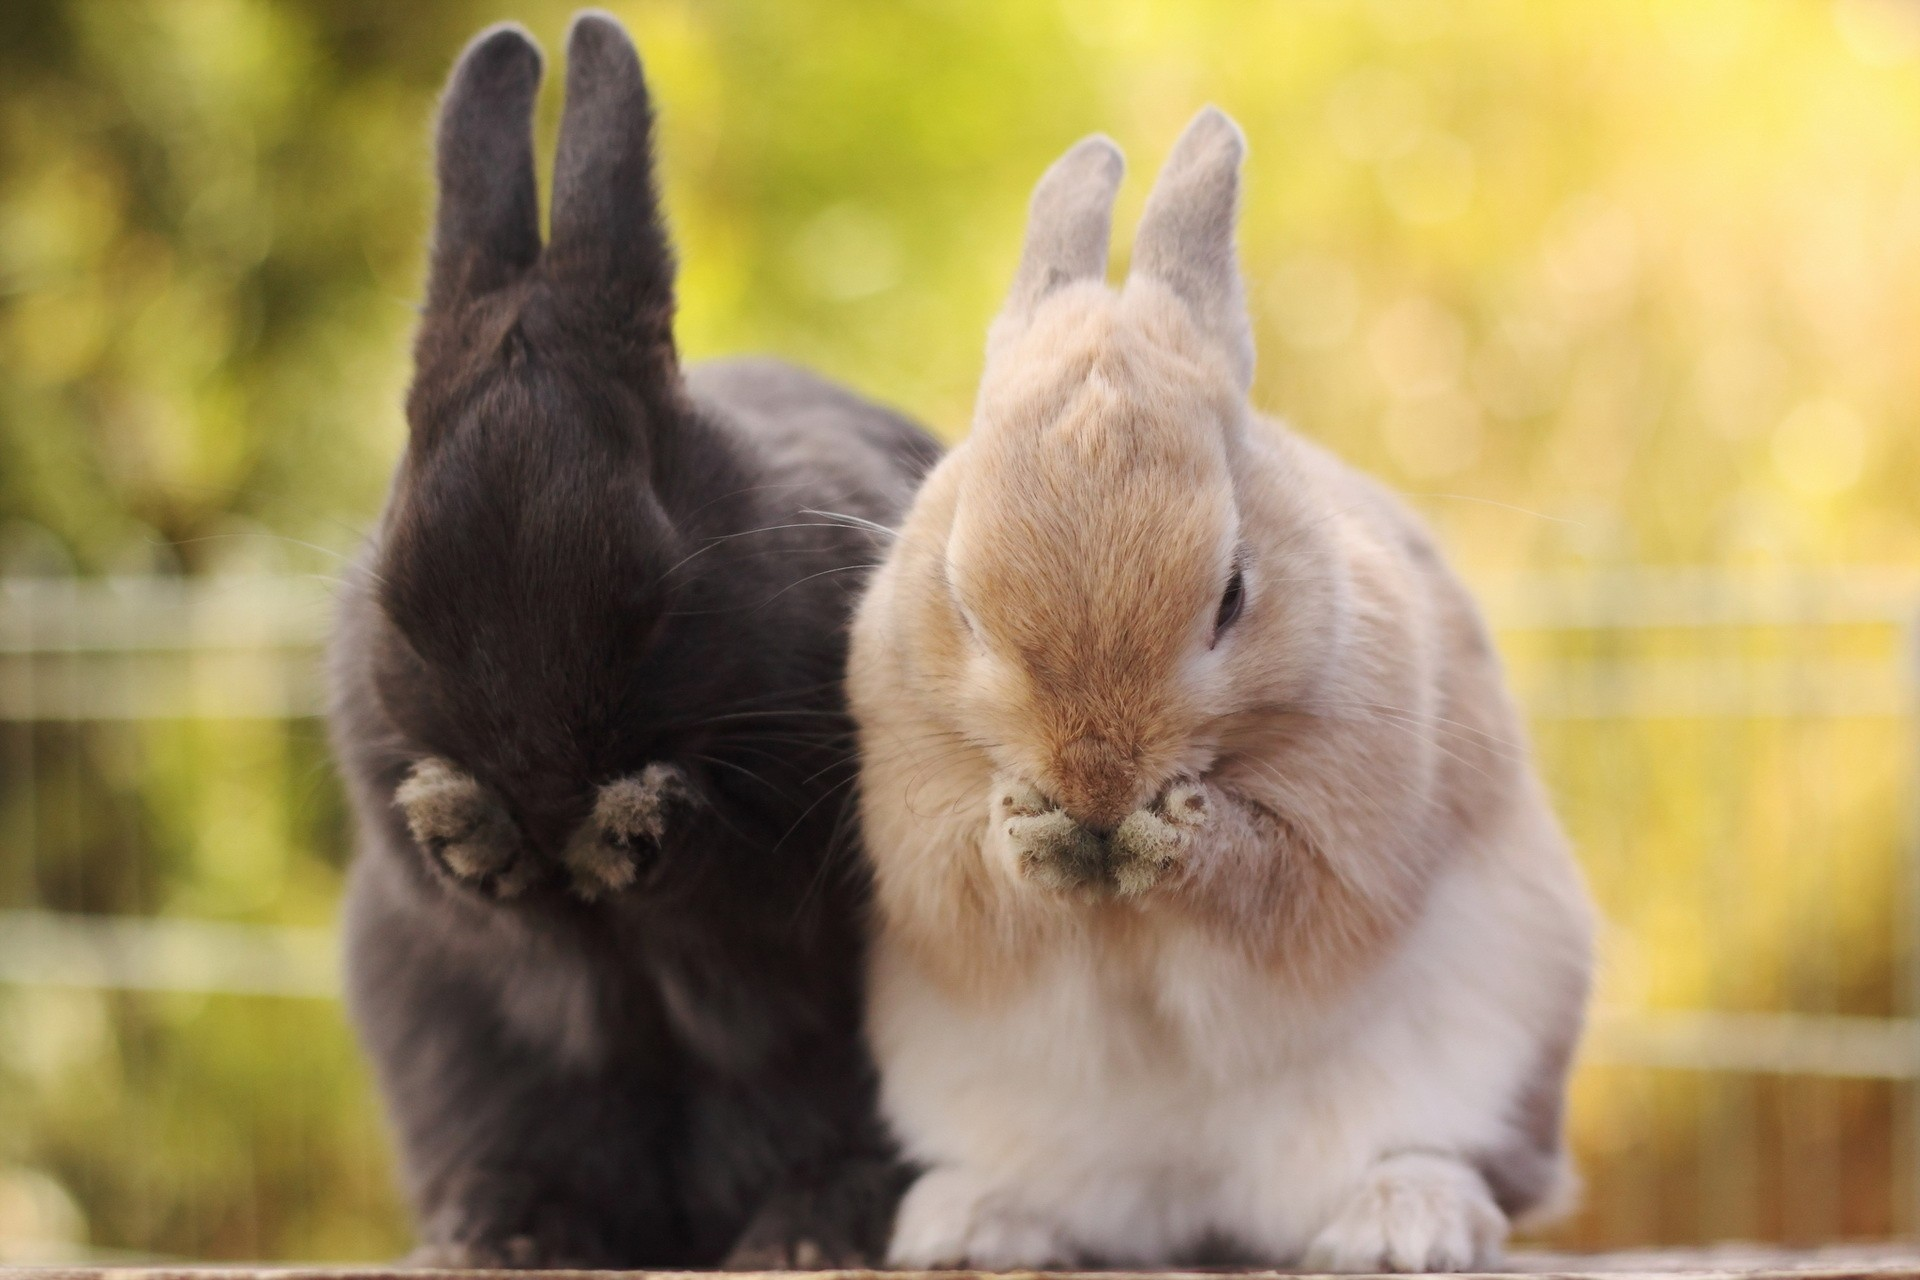 77959 download wallpaper Muzzle, Animals, Rabbits, Fluffy, Paws screensavers and pictures for free